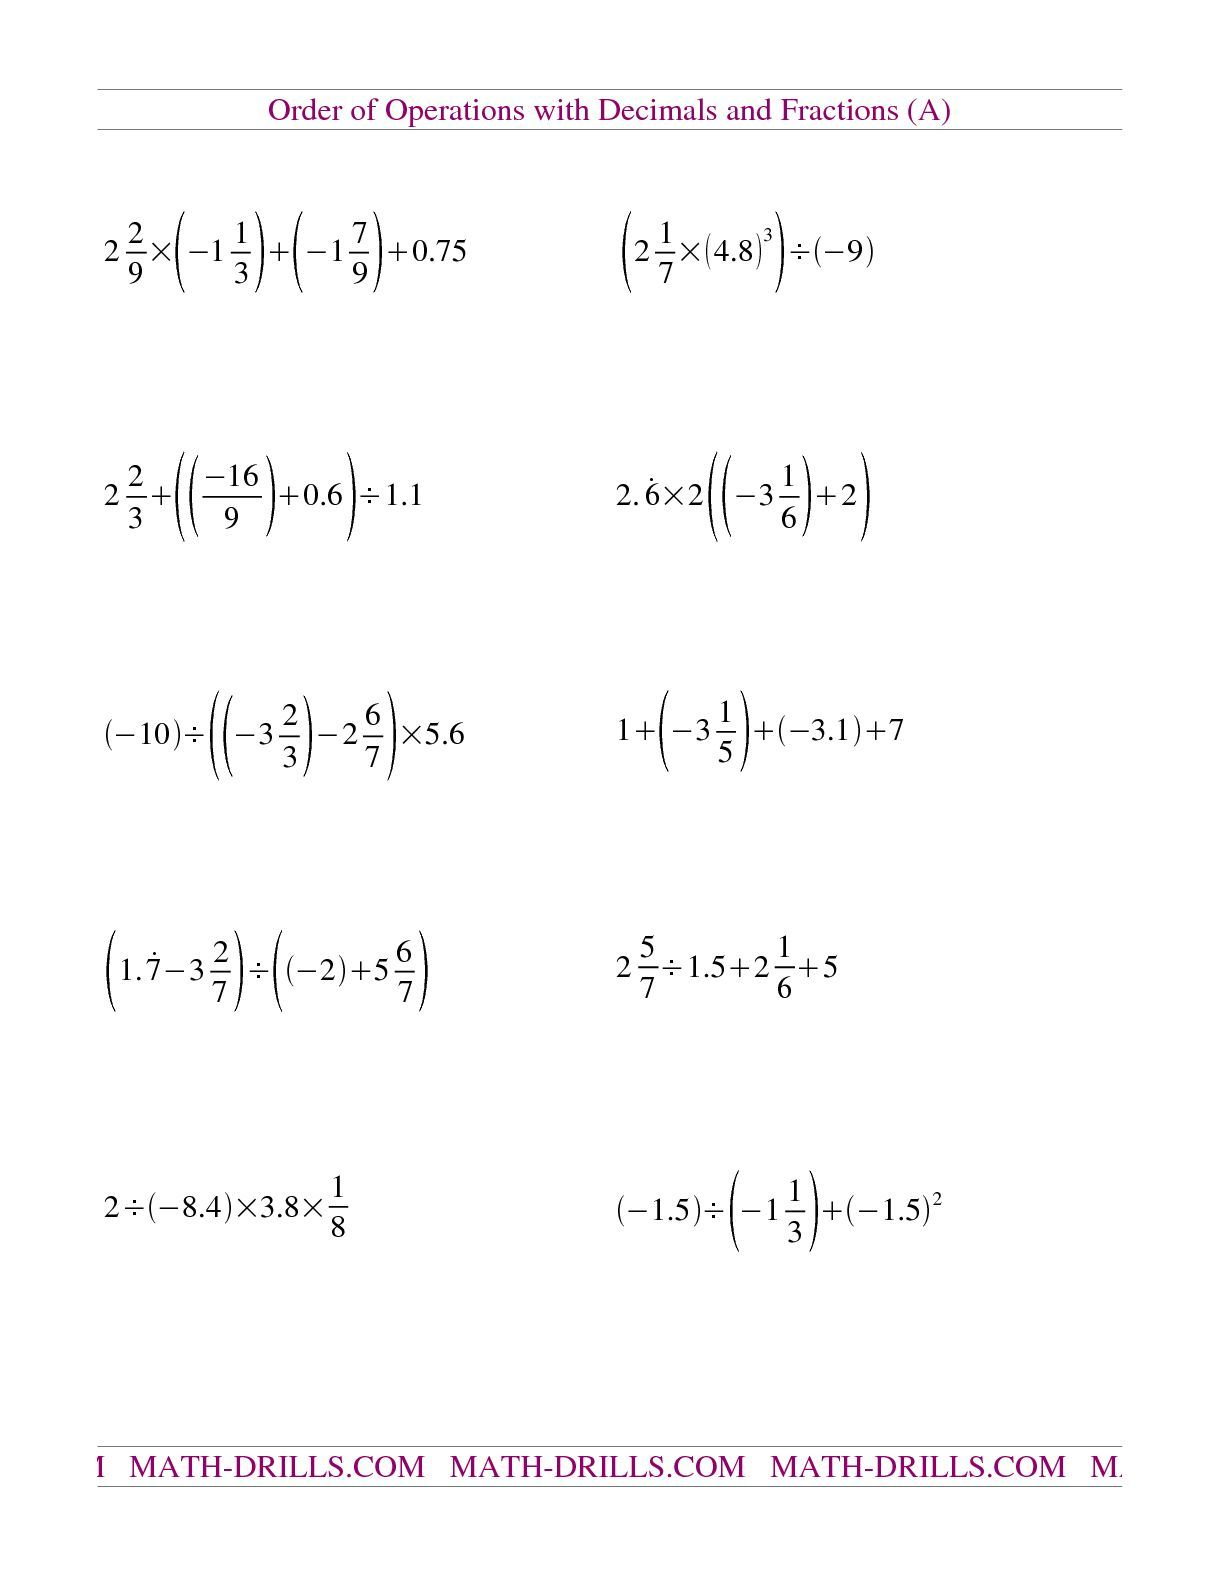 The Decimals And Fractions Mixed With Negatives A Math Worksheet From The Order Of Operations